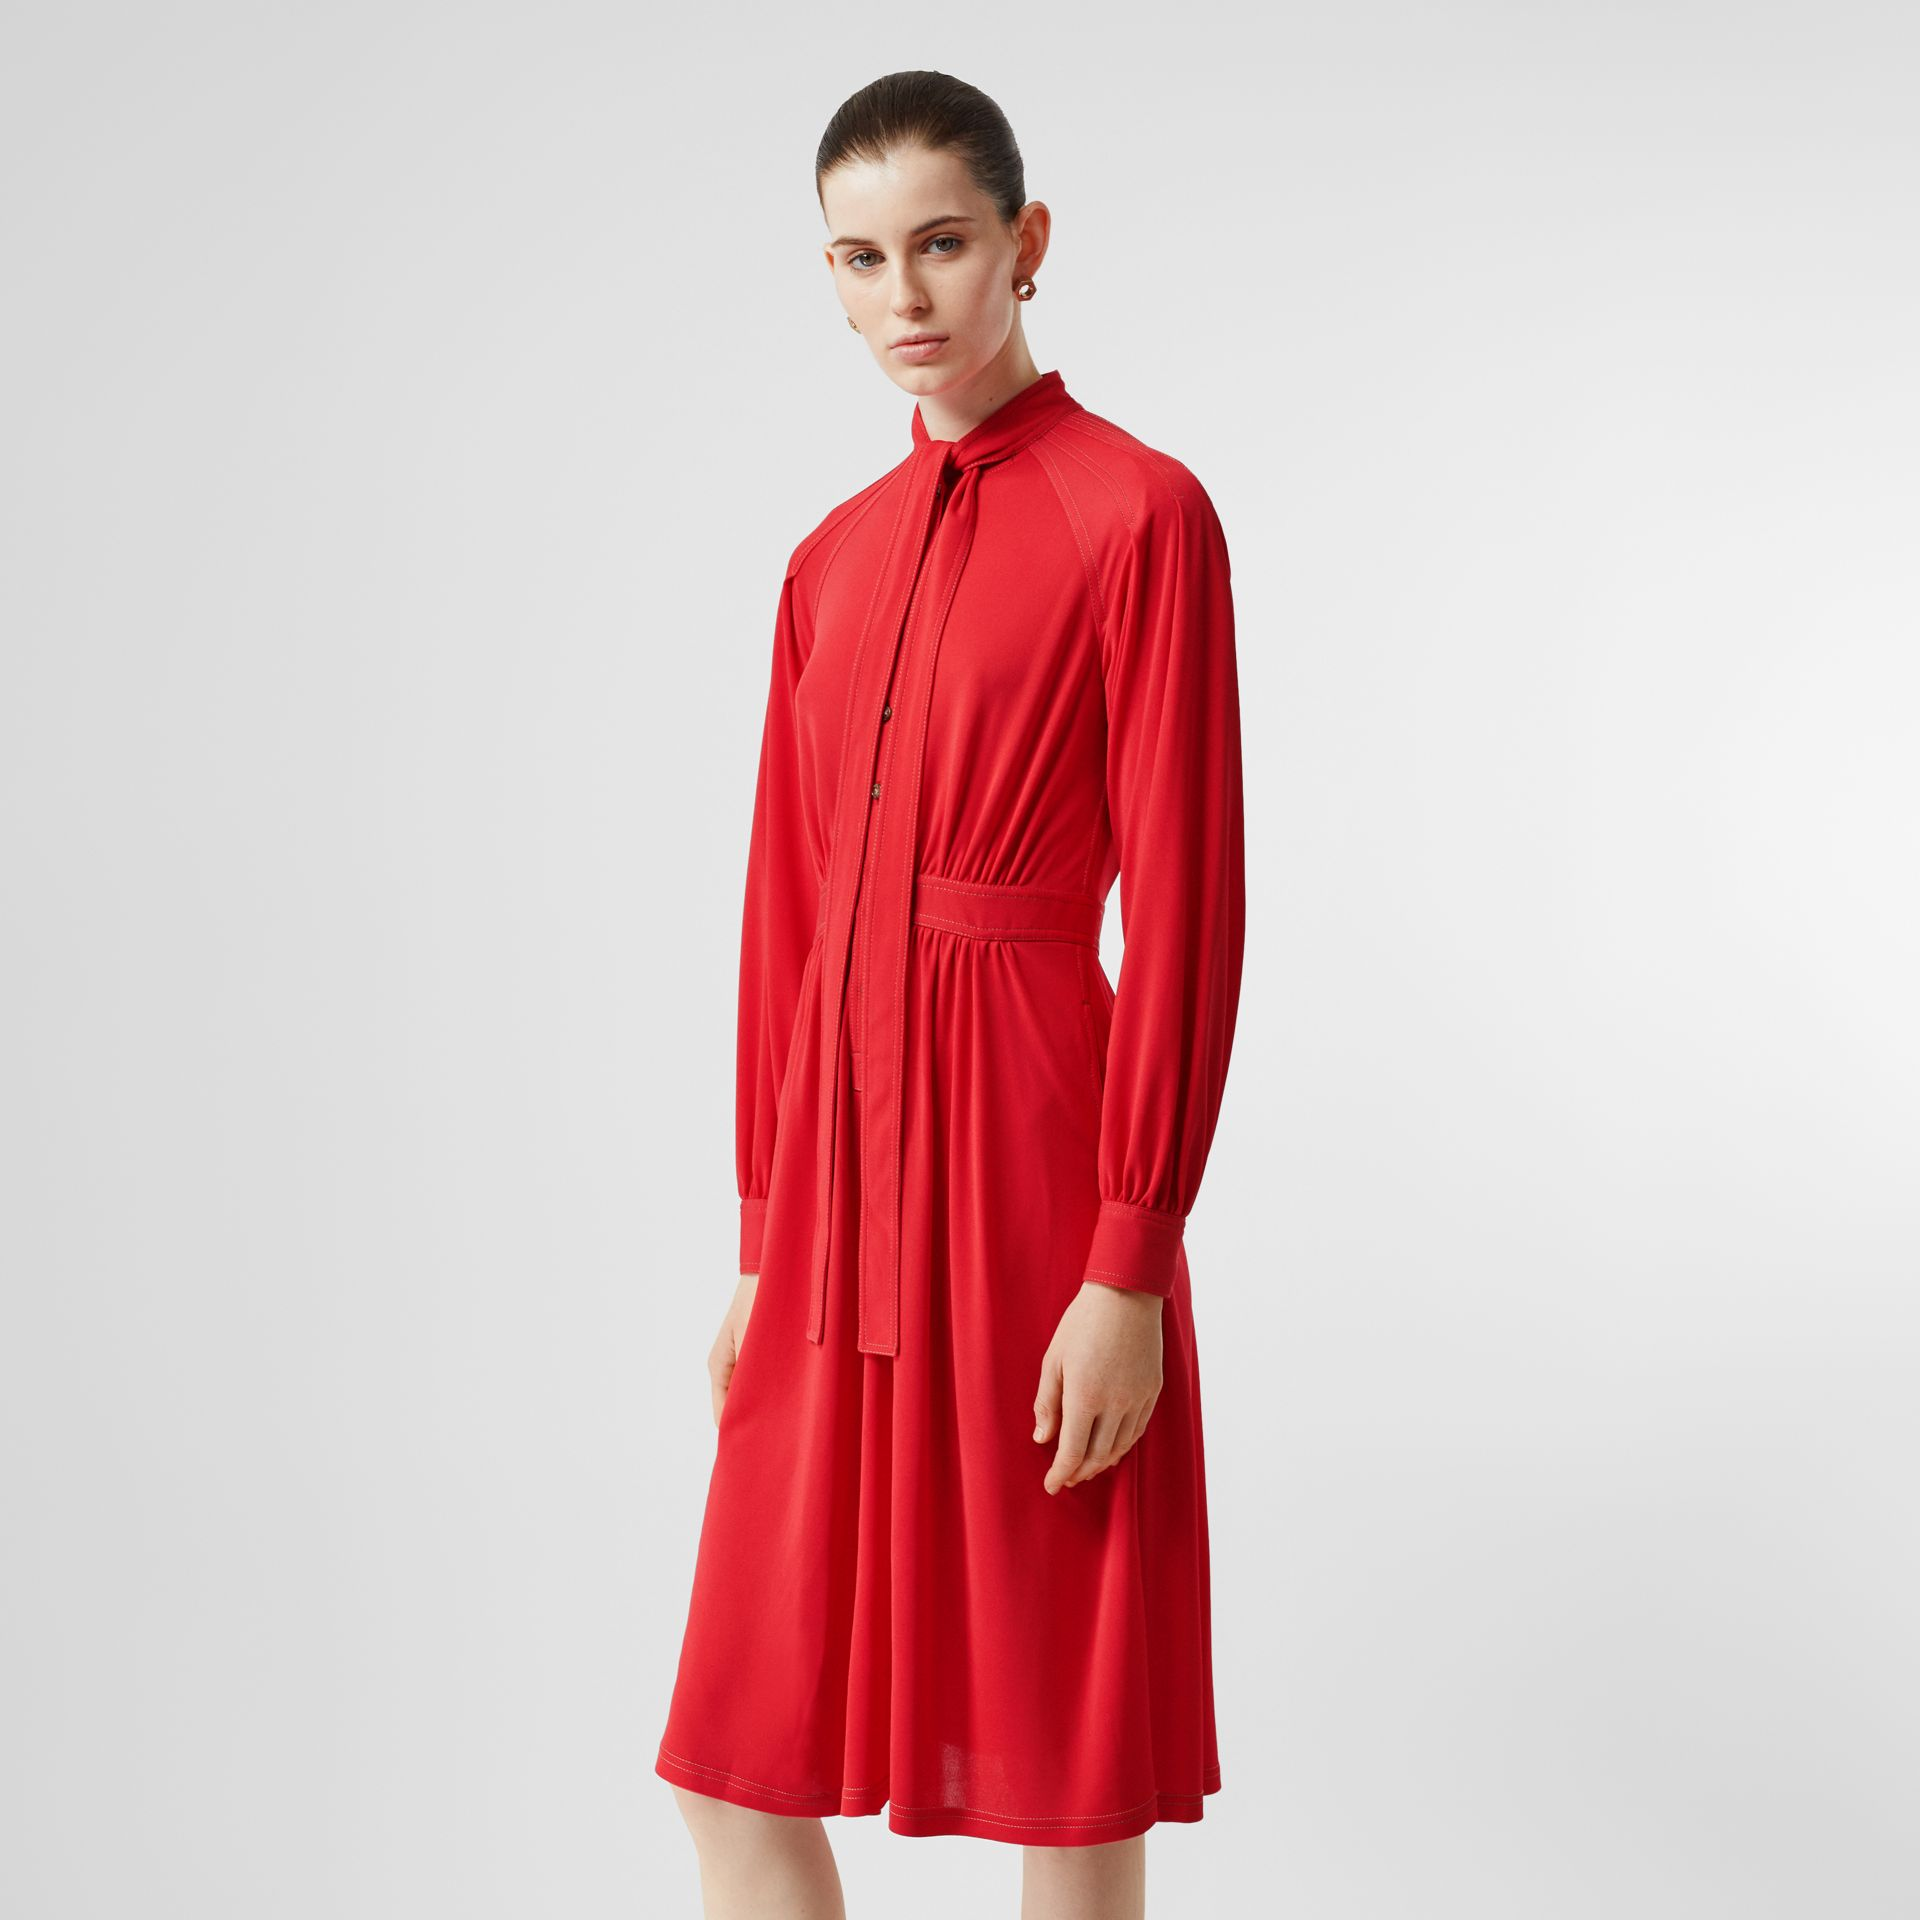 Topstitch Detail Jersey Tie-neck Dress in Bright Red - Women | Burberry - gallery image 5